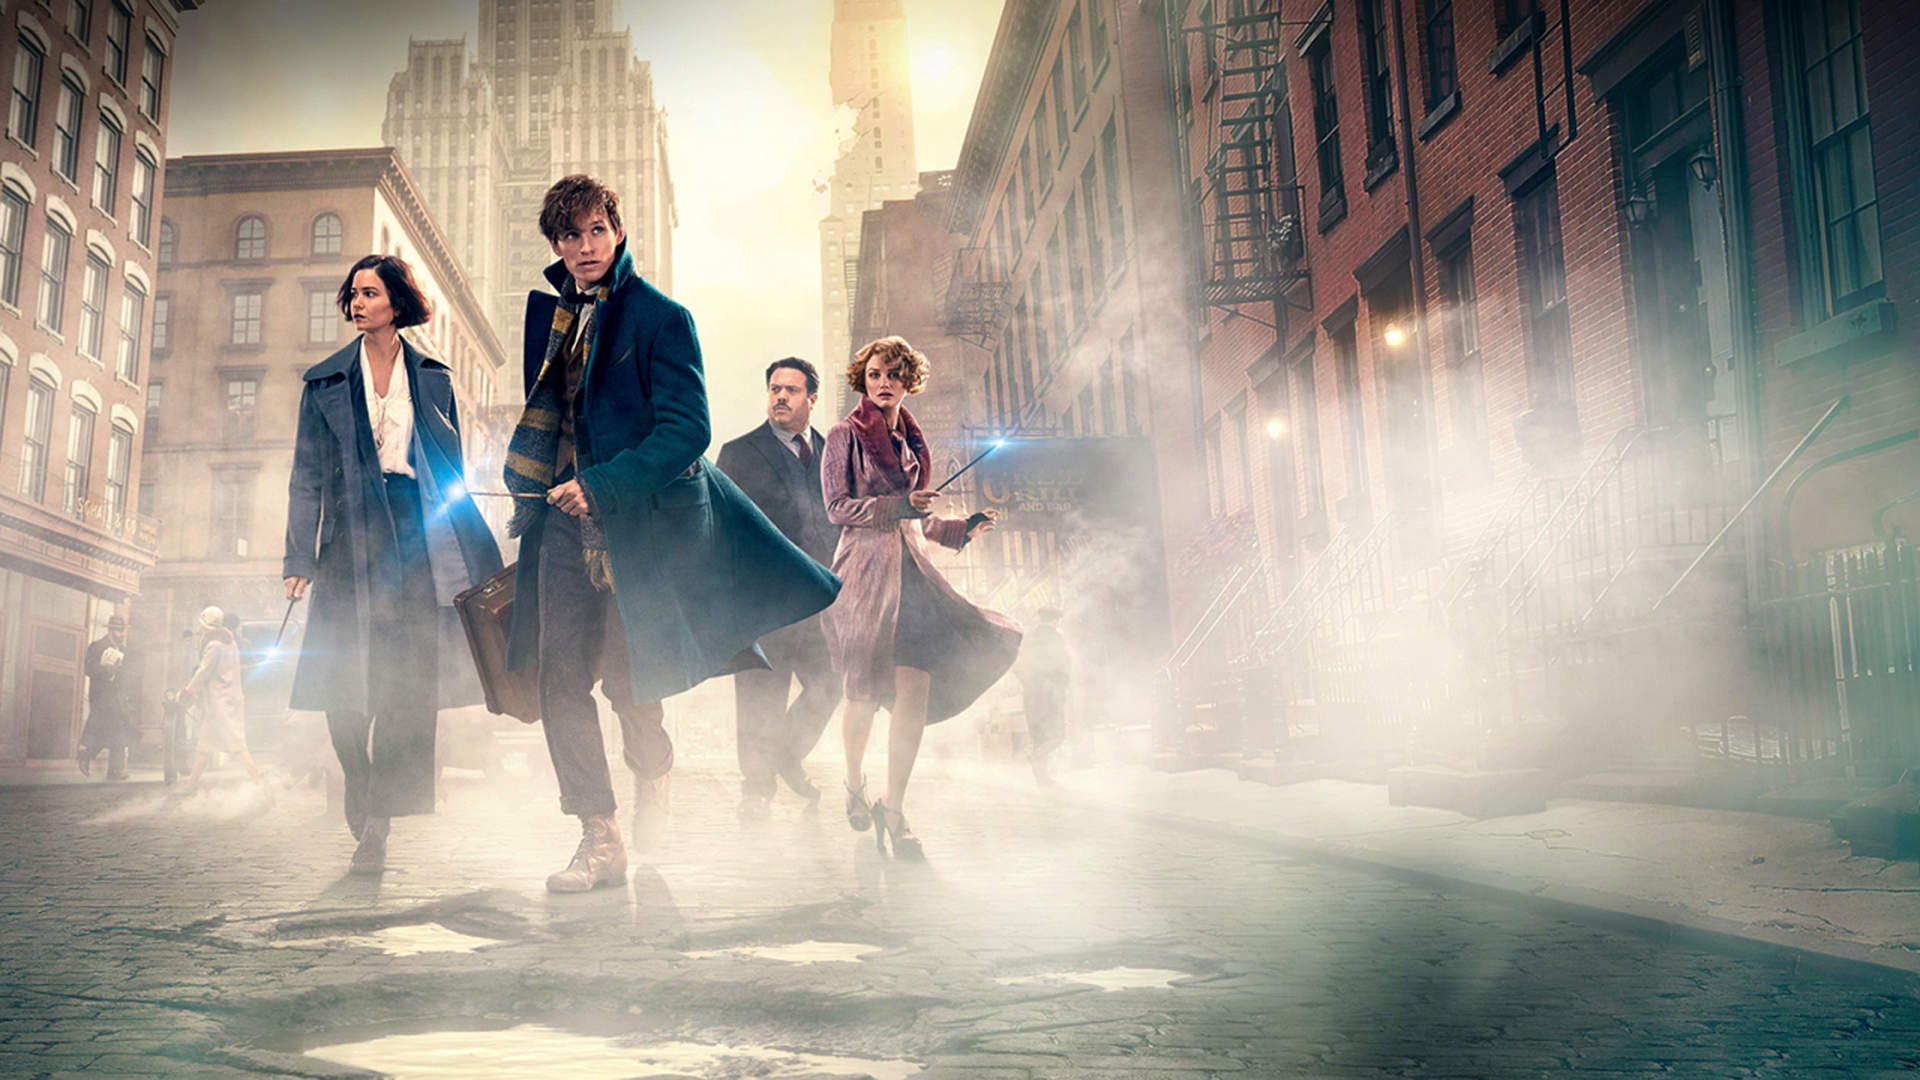 Fantastic Beasts and Where to Find Them HD Wallpaper Background 1920x1080